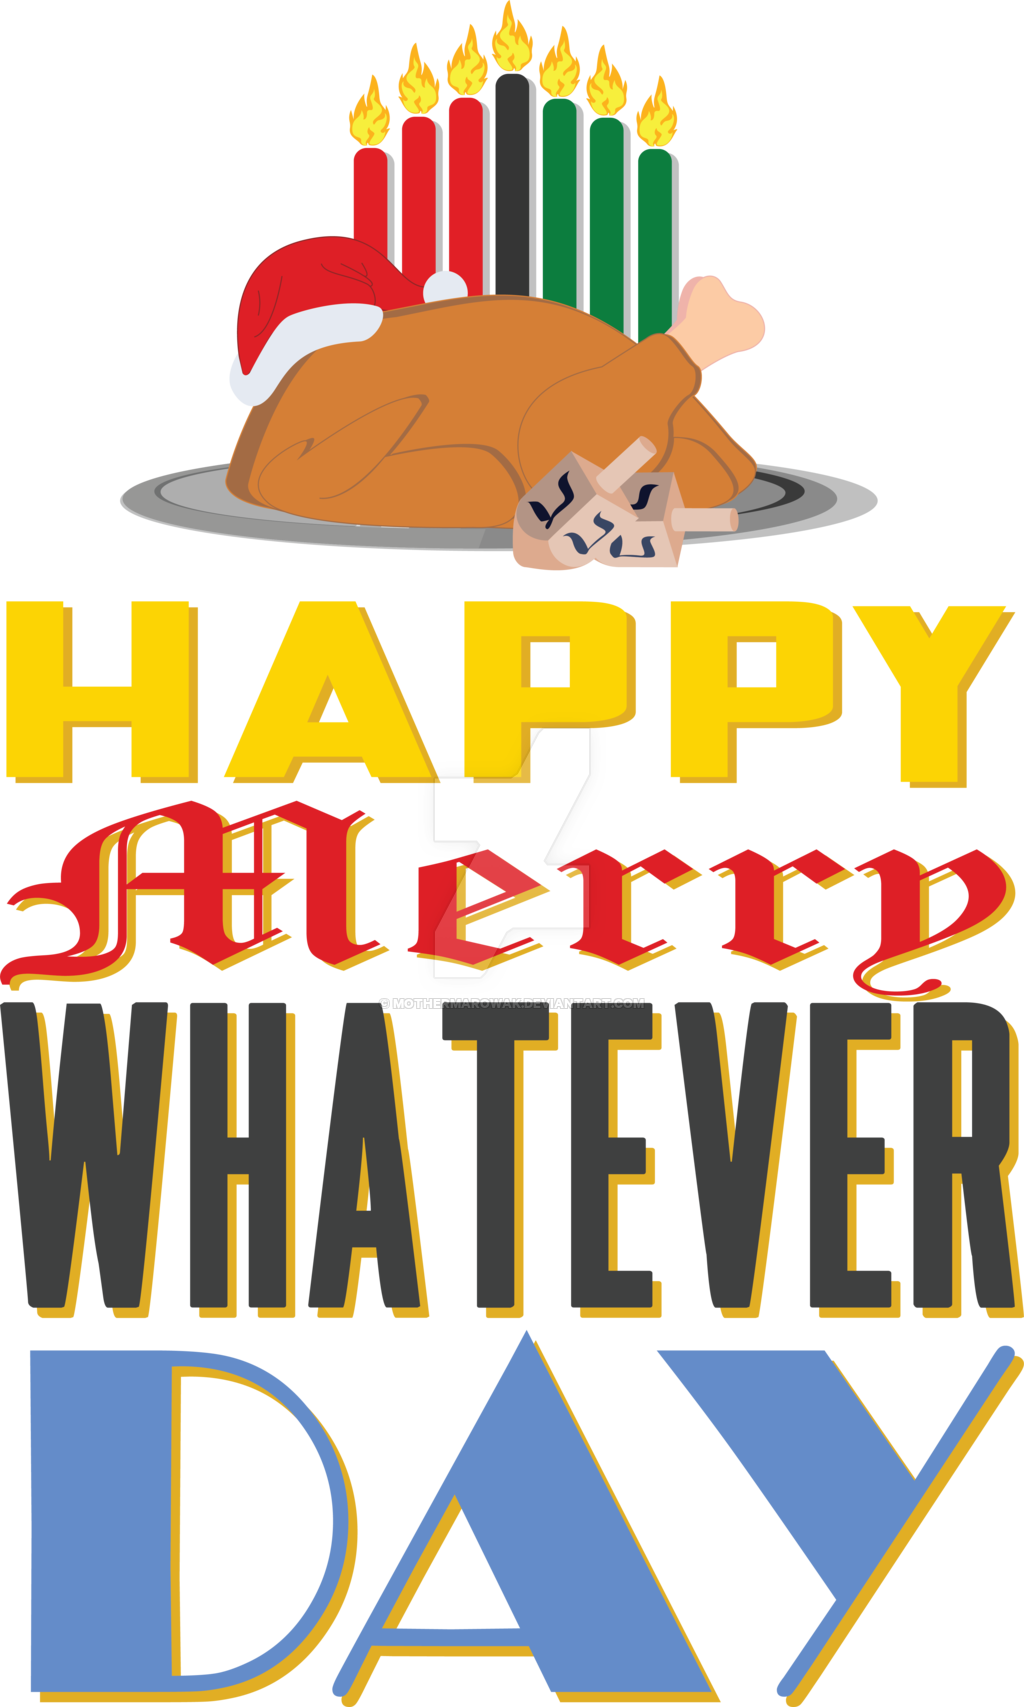 Merry whatever day by. Kwanzaa clipart happy